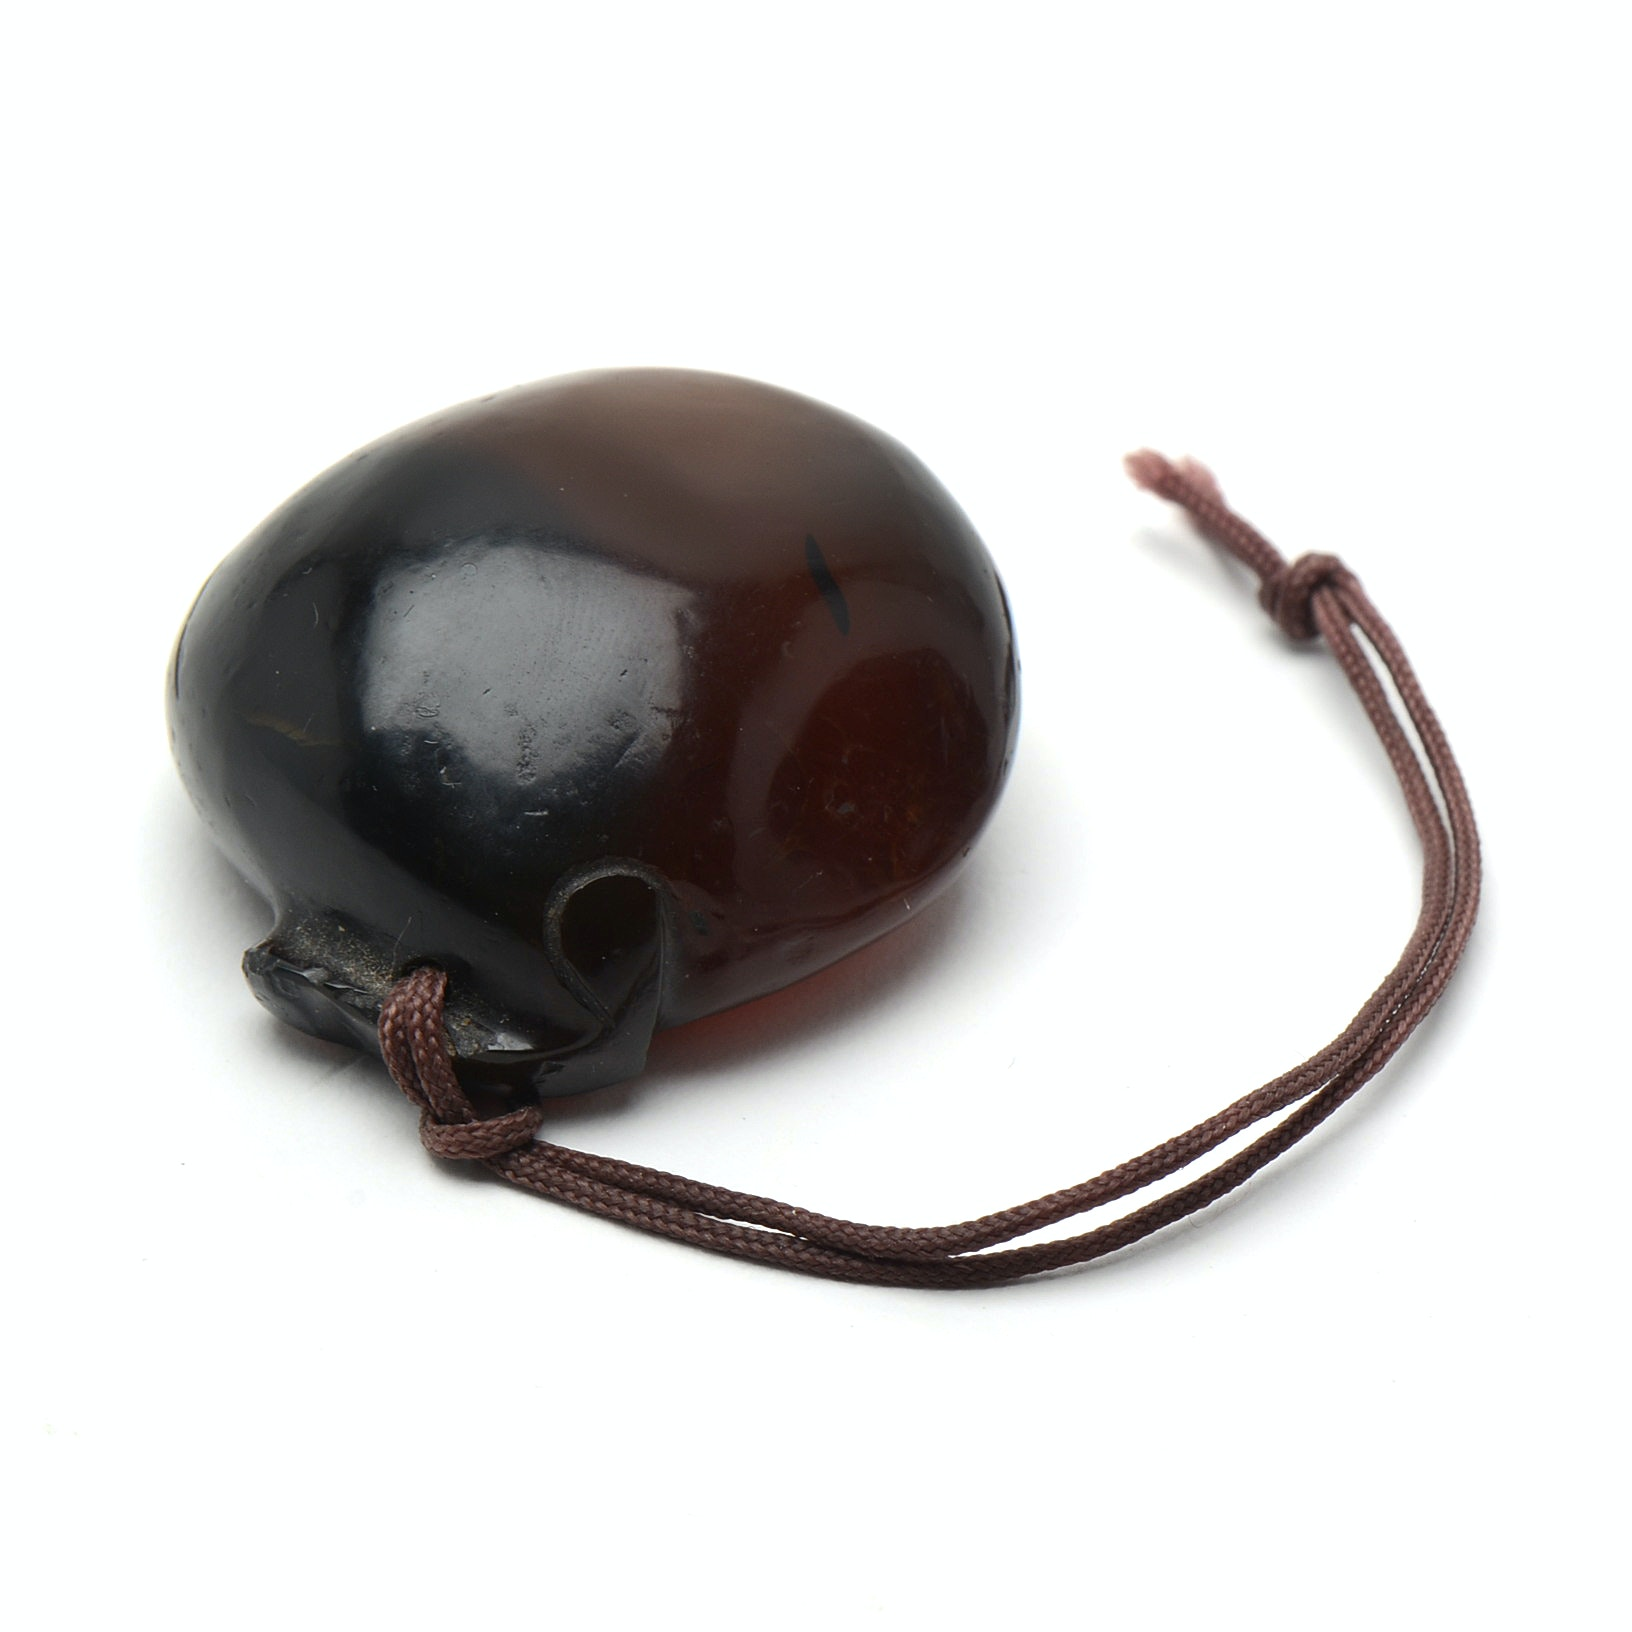 Qing Dynasty Chinese Carved Agate Pebble Form Toggle